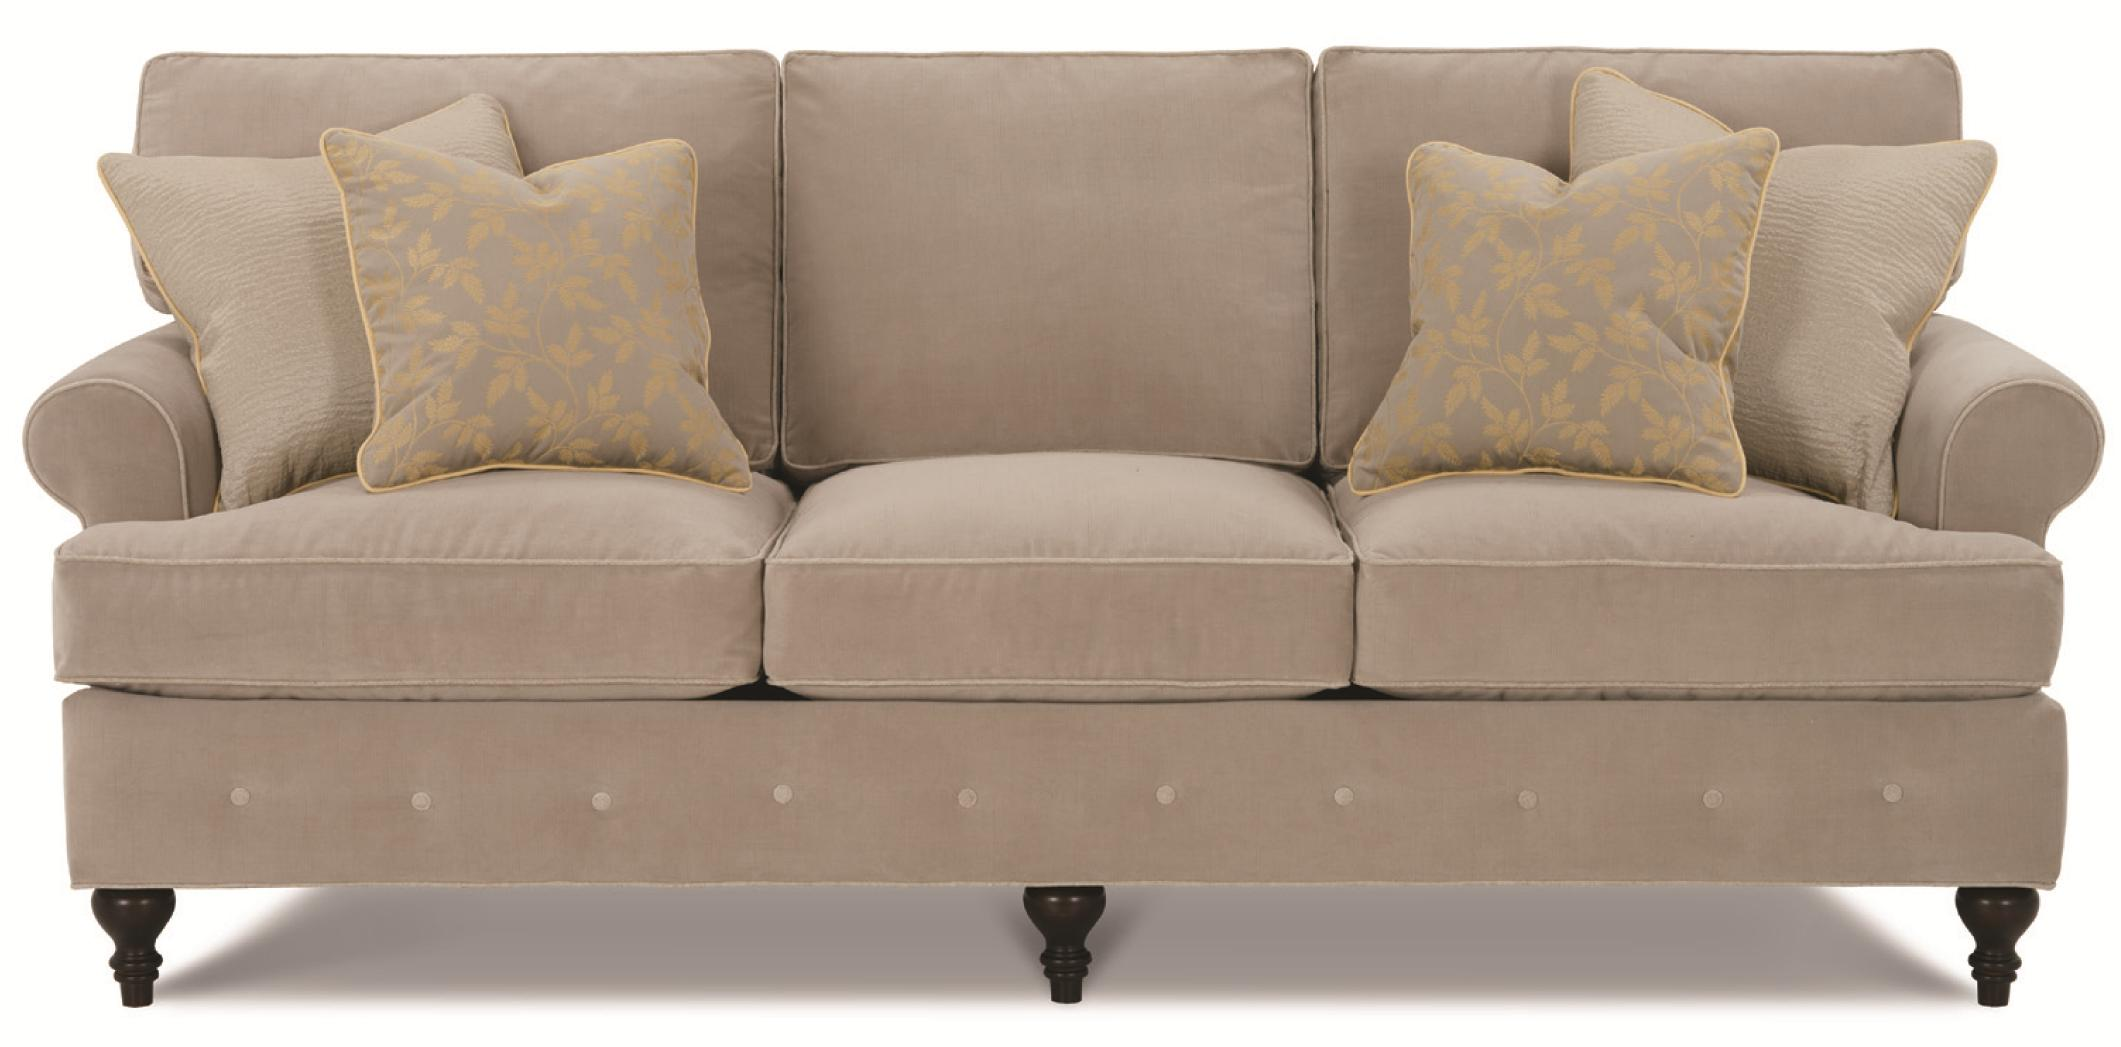 Kensington Collection   Gerrard Casual Loose Pillow Back Sofa With  Decorative Button Bench Trim By Clayton Marcus